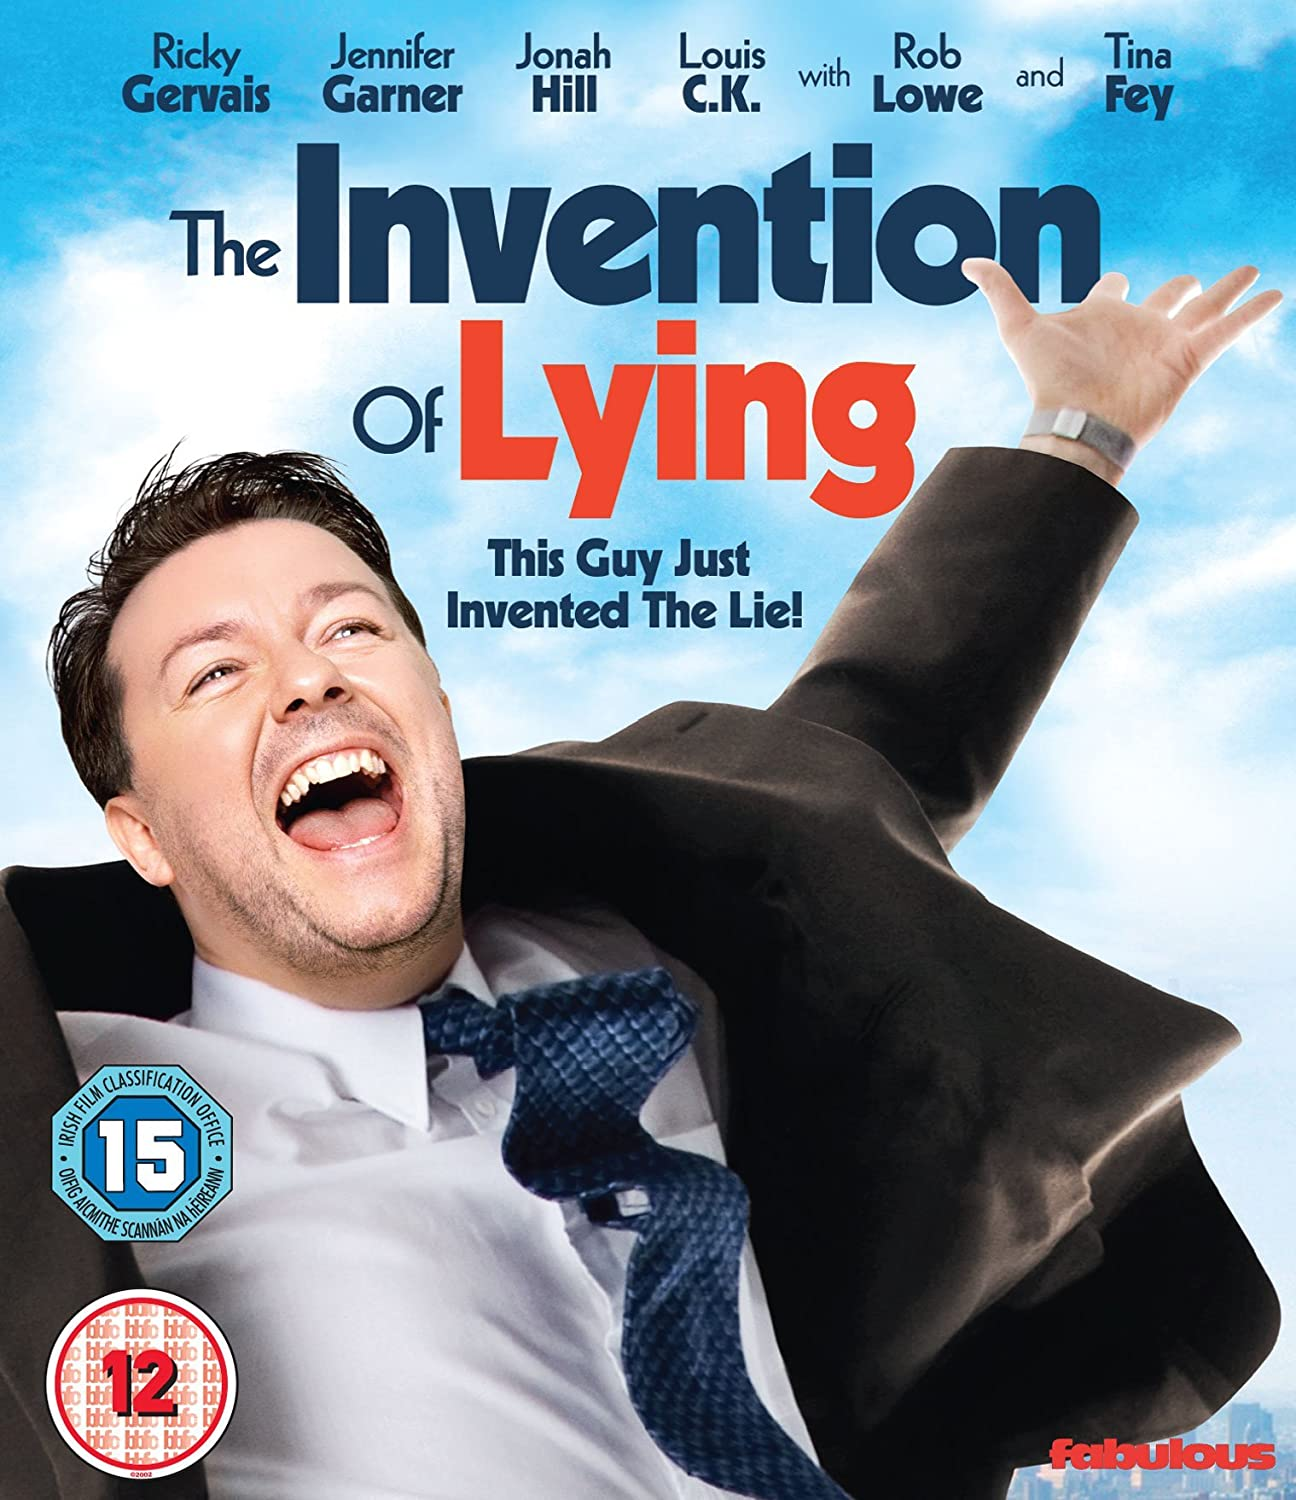 The Invention of Lying [Blu-ray]: Amazon.co.uk: Ricky Gervais, Jennifer  Garner, Jonah Hill, Louis C.K, Rob Lowe, Ricky Gervais, Matthew Robinson,  Ricky Gervais, Jennifer Garner: DVD & Blu-ray